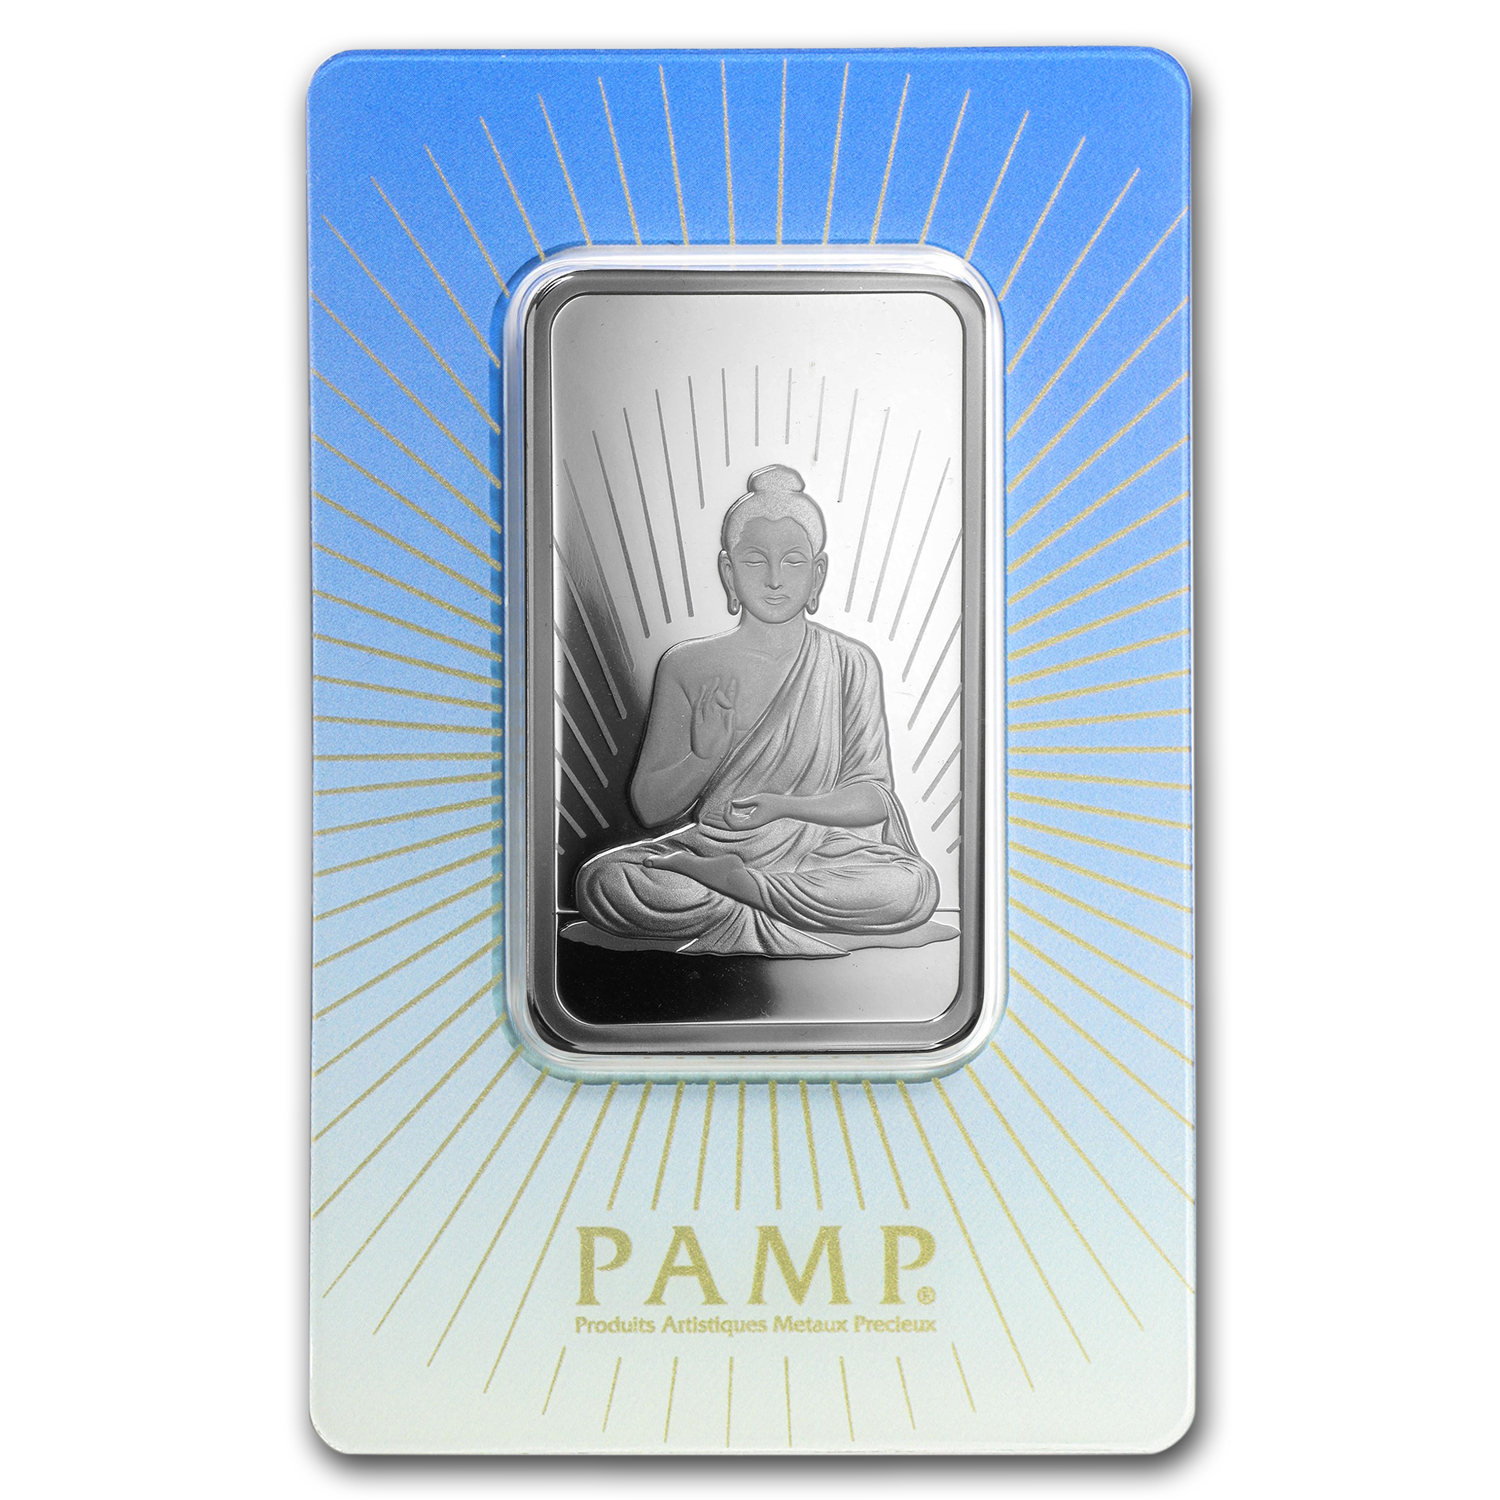 1 oz Silver Bar - PAMP Suisse Religious Series (Buddha, In Assay)